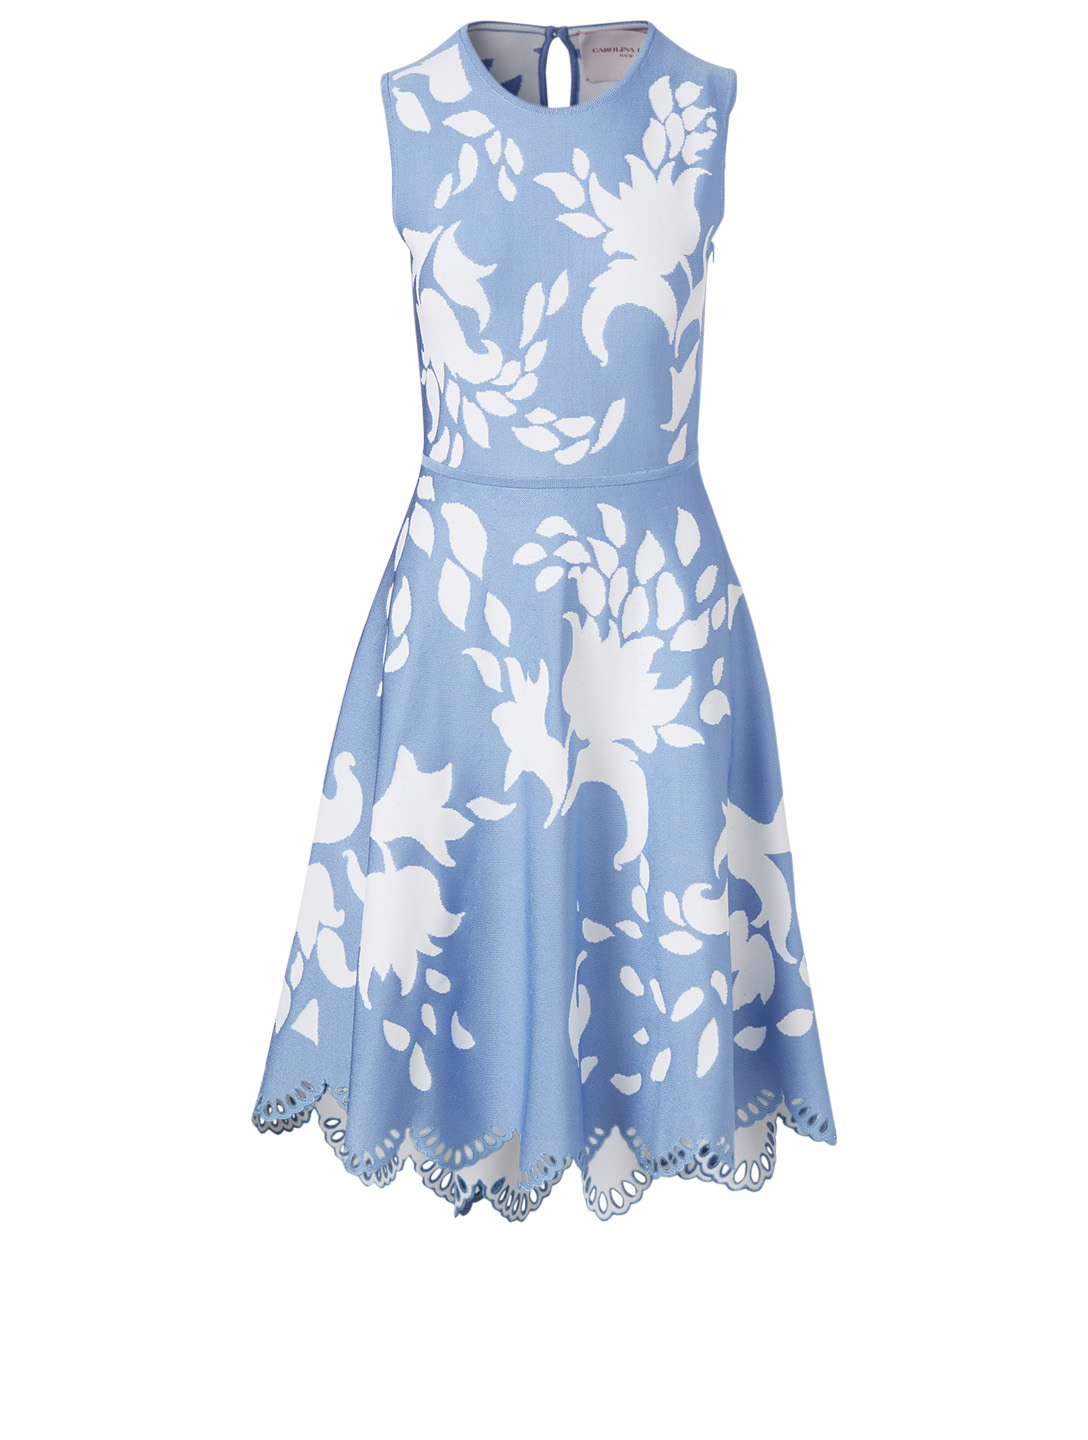 CAROLINA HERRERA Laser-Cut Sleeveless Dress Women's Blue